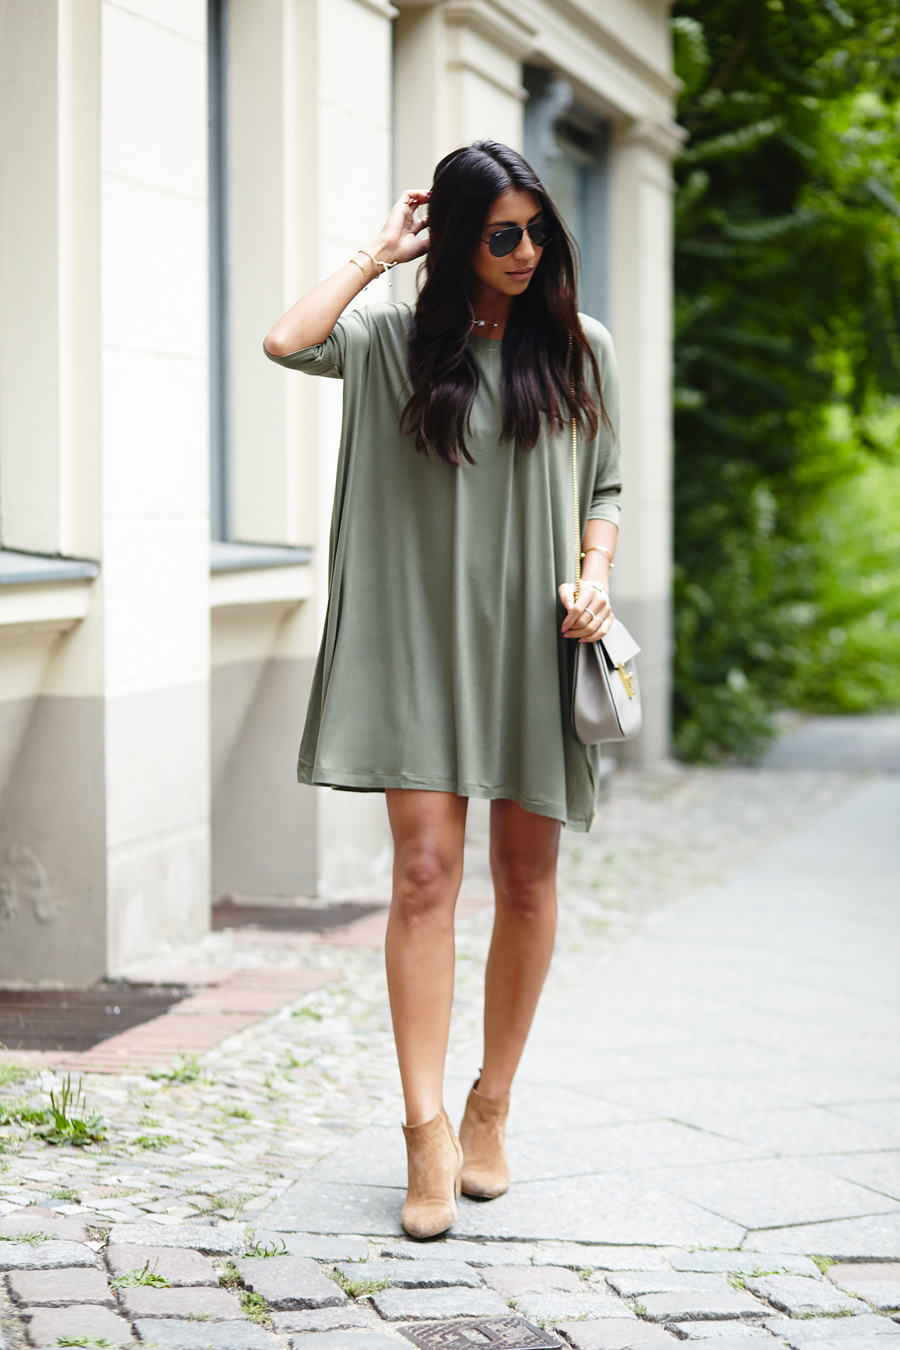 bba80fe05c71 Cute Casual Summer Outfits  This Is What You Should Wear - Just The ...